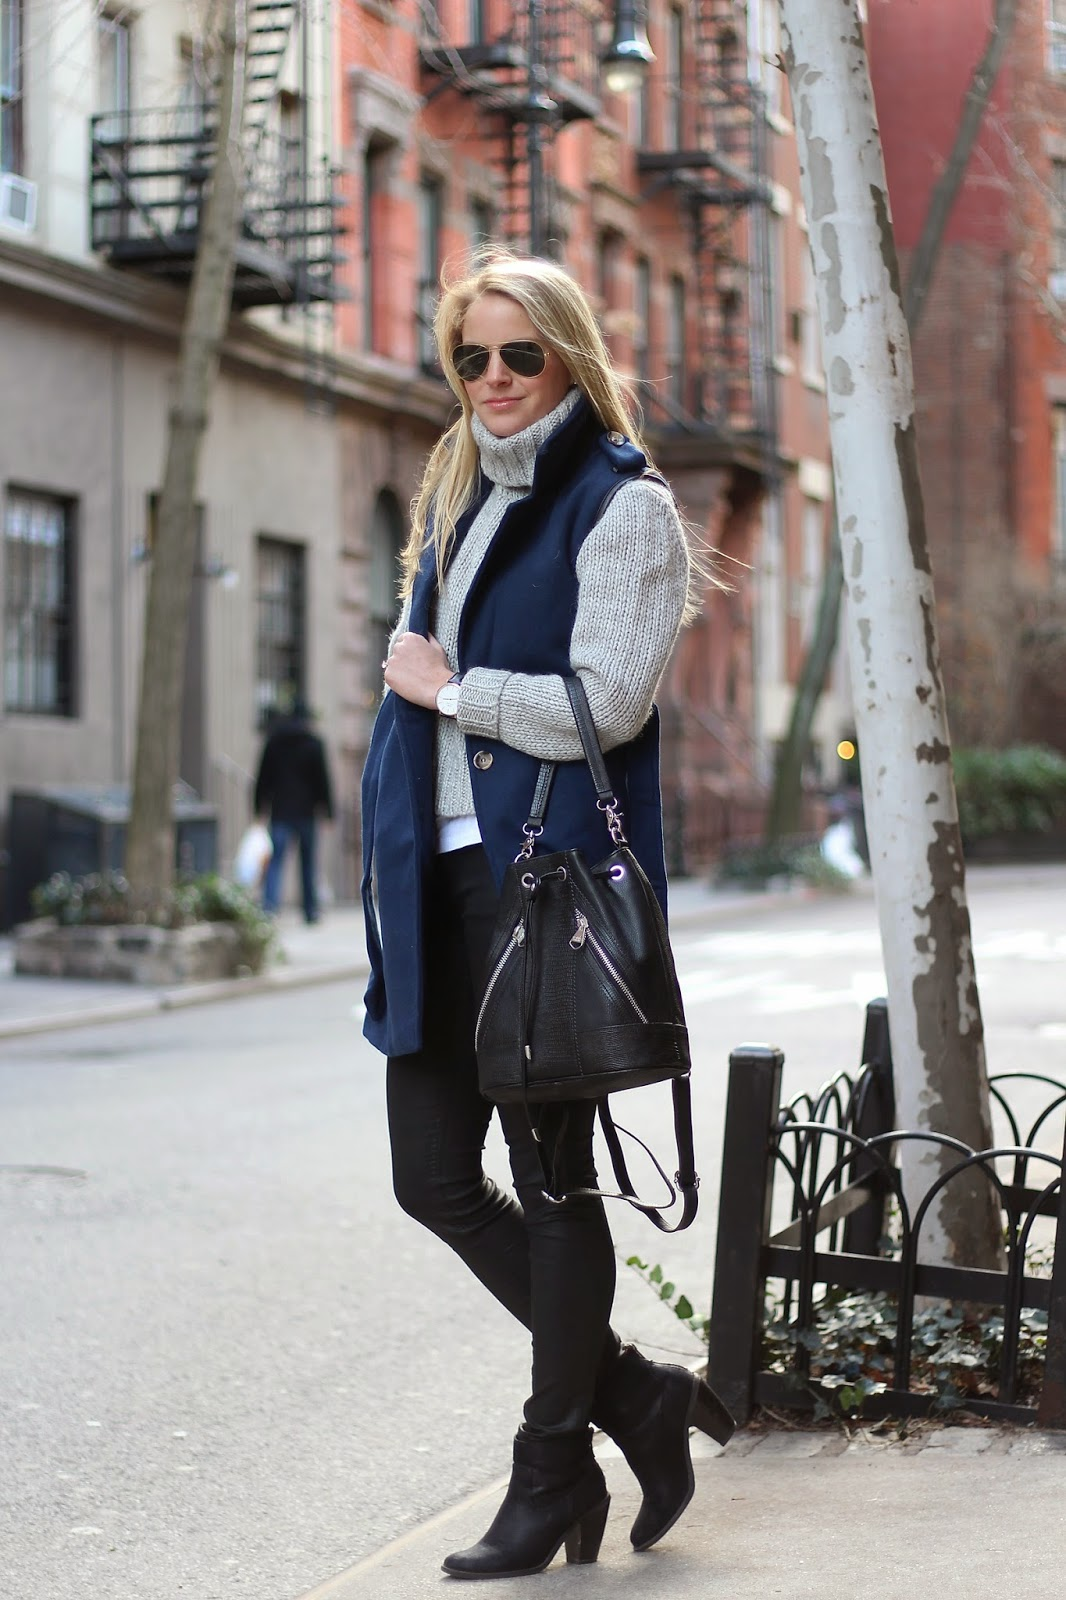 sleeveless coat, turtleneck sweater, leather backpack, how to layer clothes